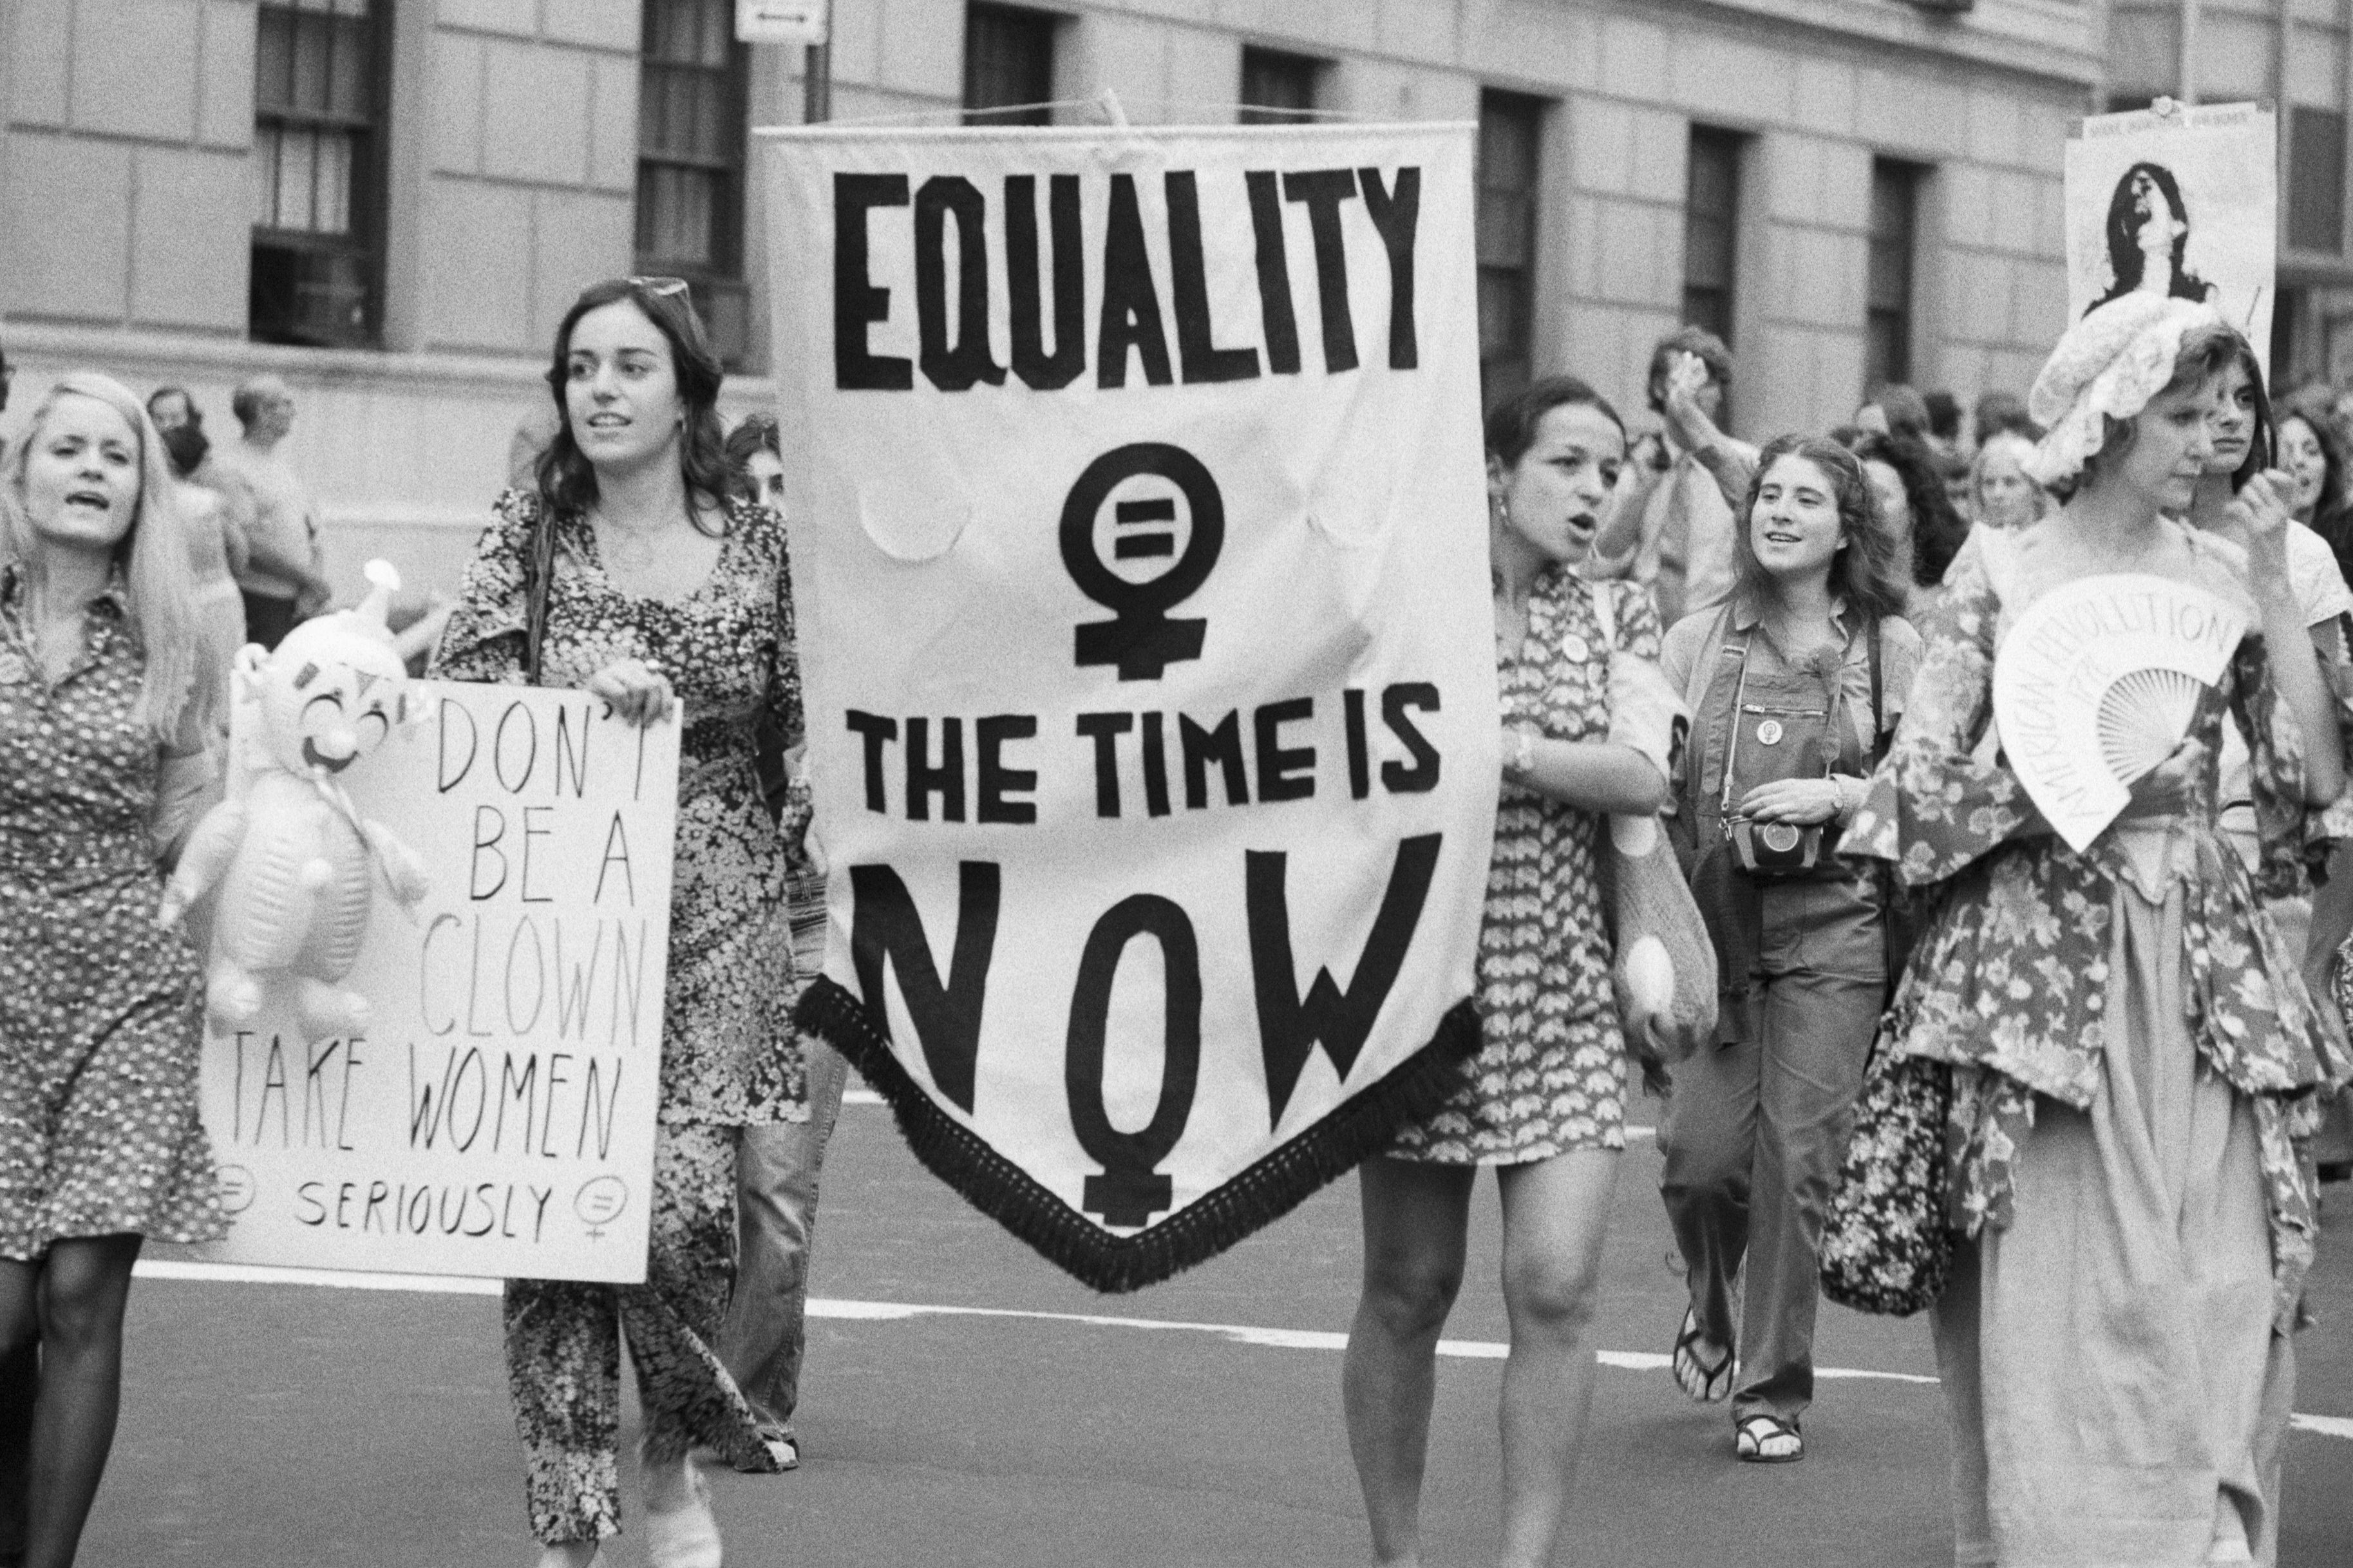 Why International Women's Day is Celebrated on March 8 - IWD History